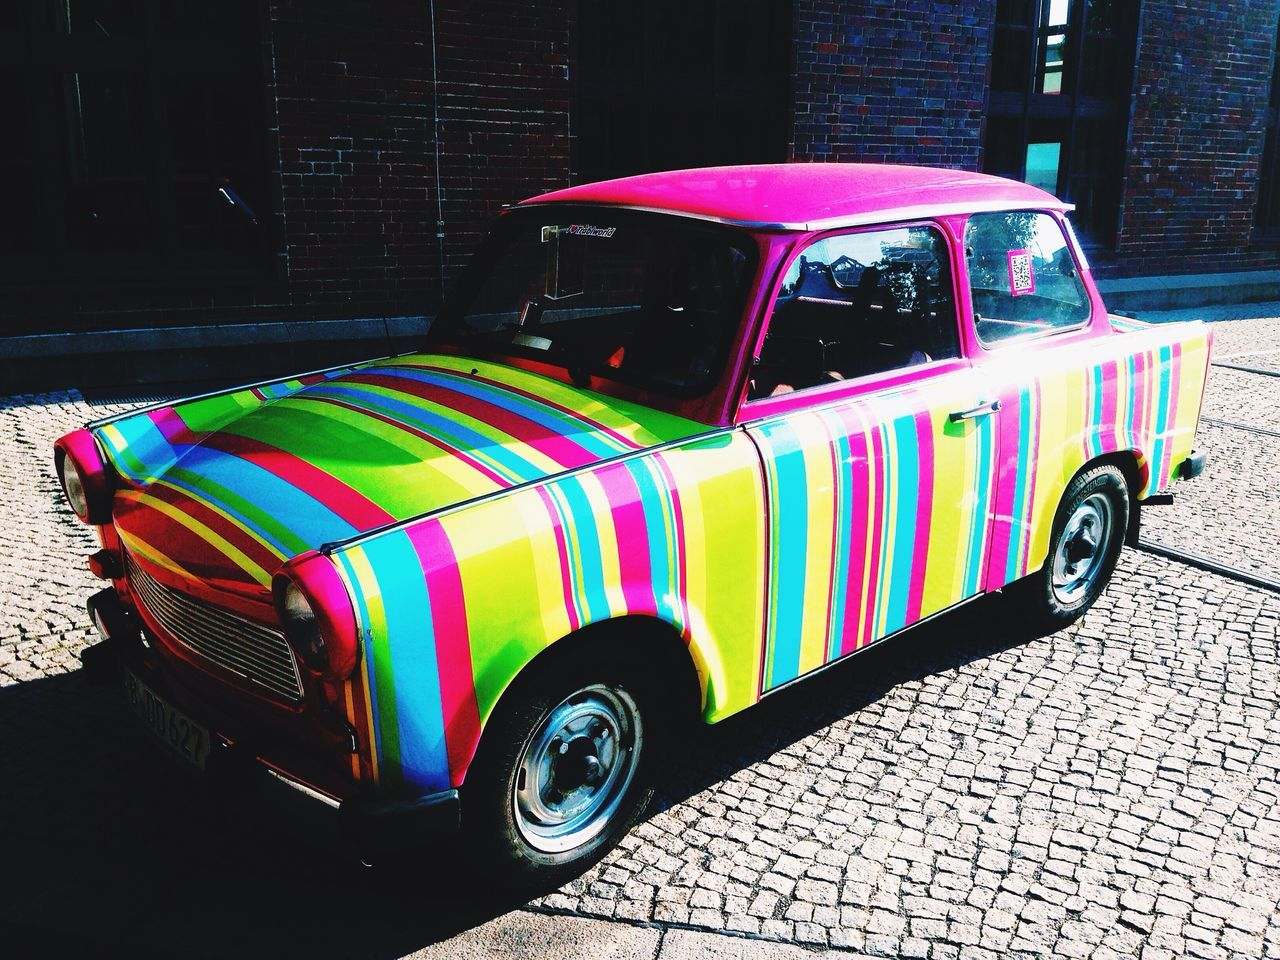 Color Explosion Car Check This Out I ❤ BERLIN